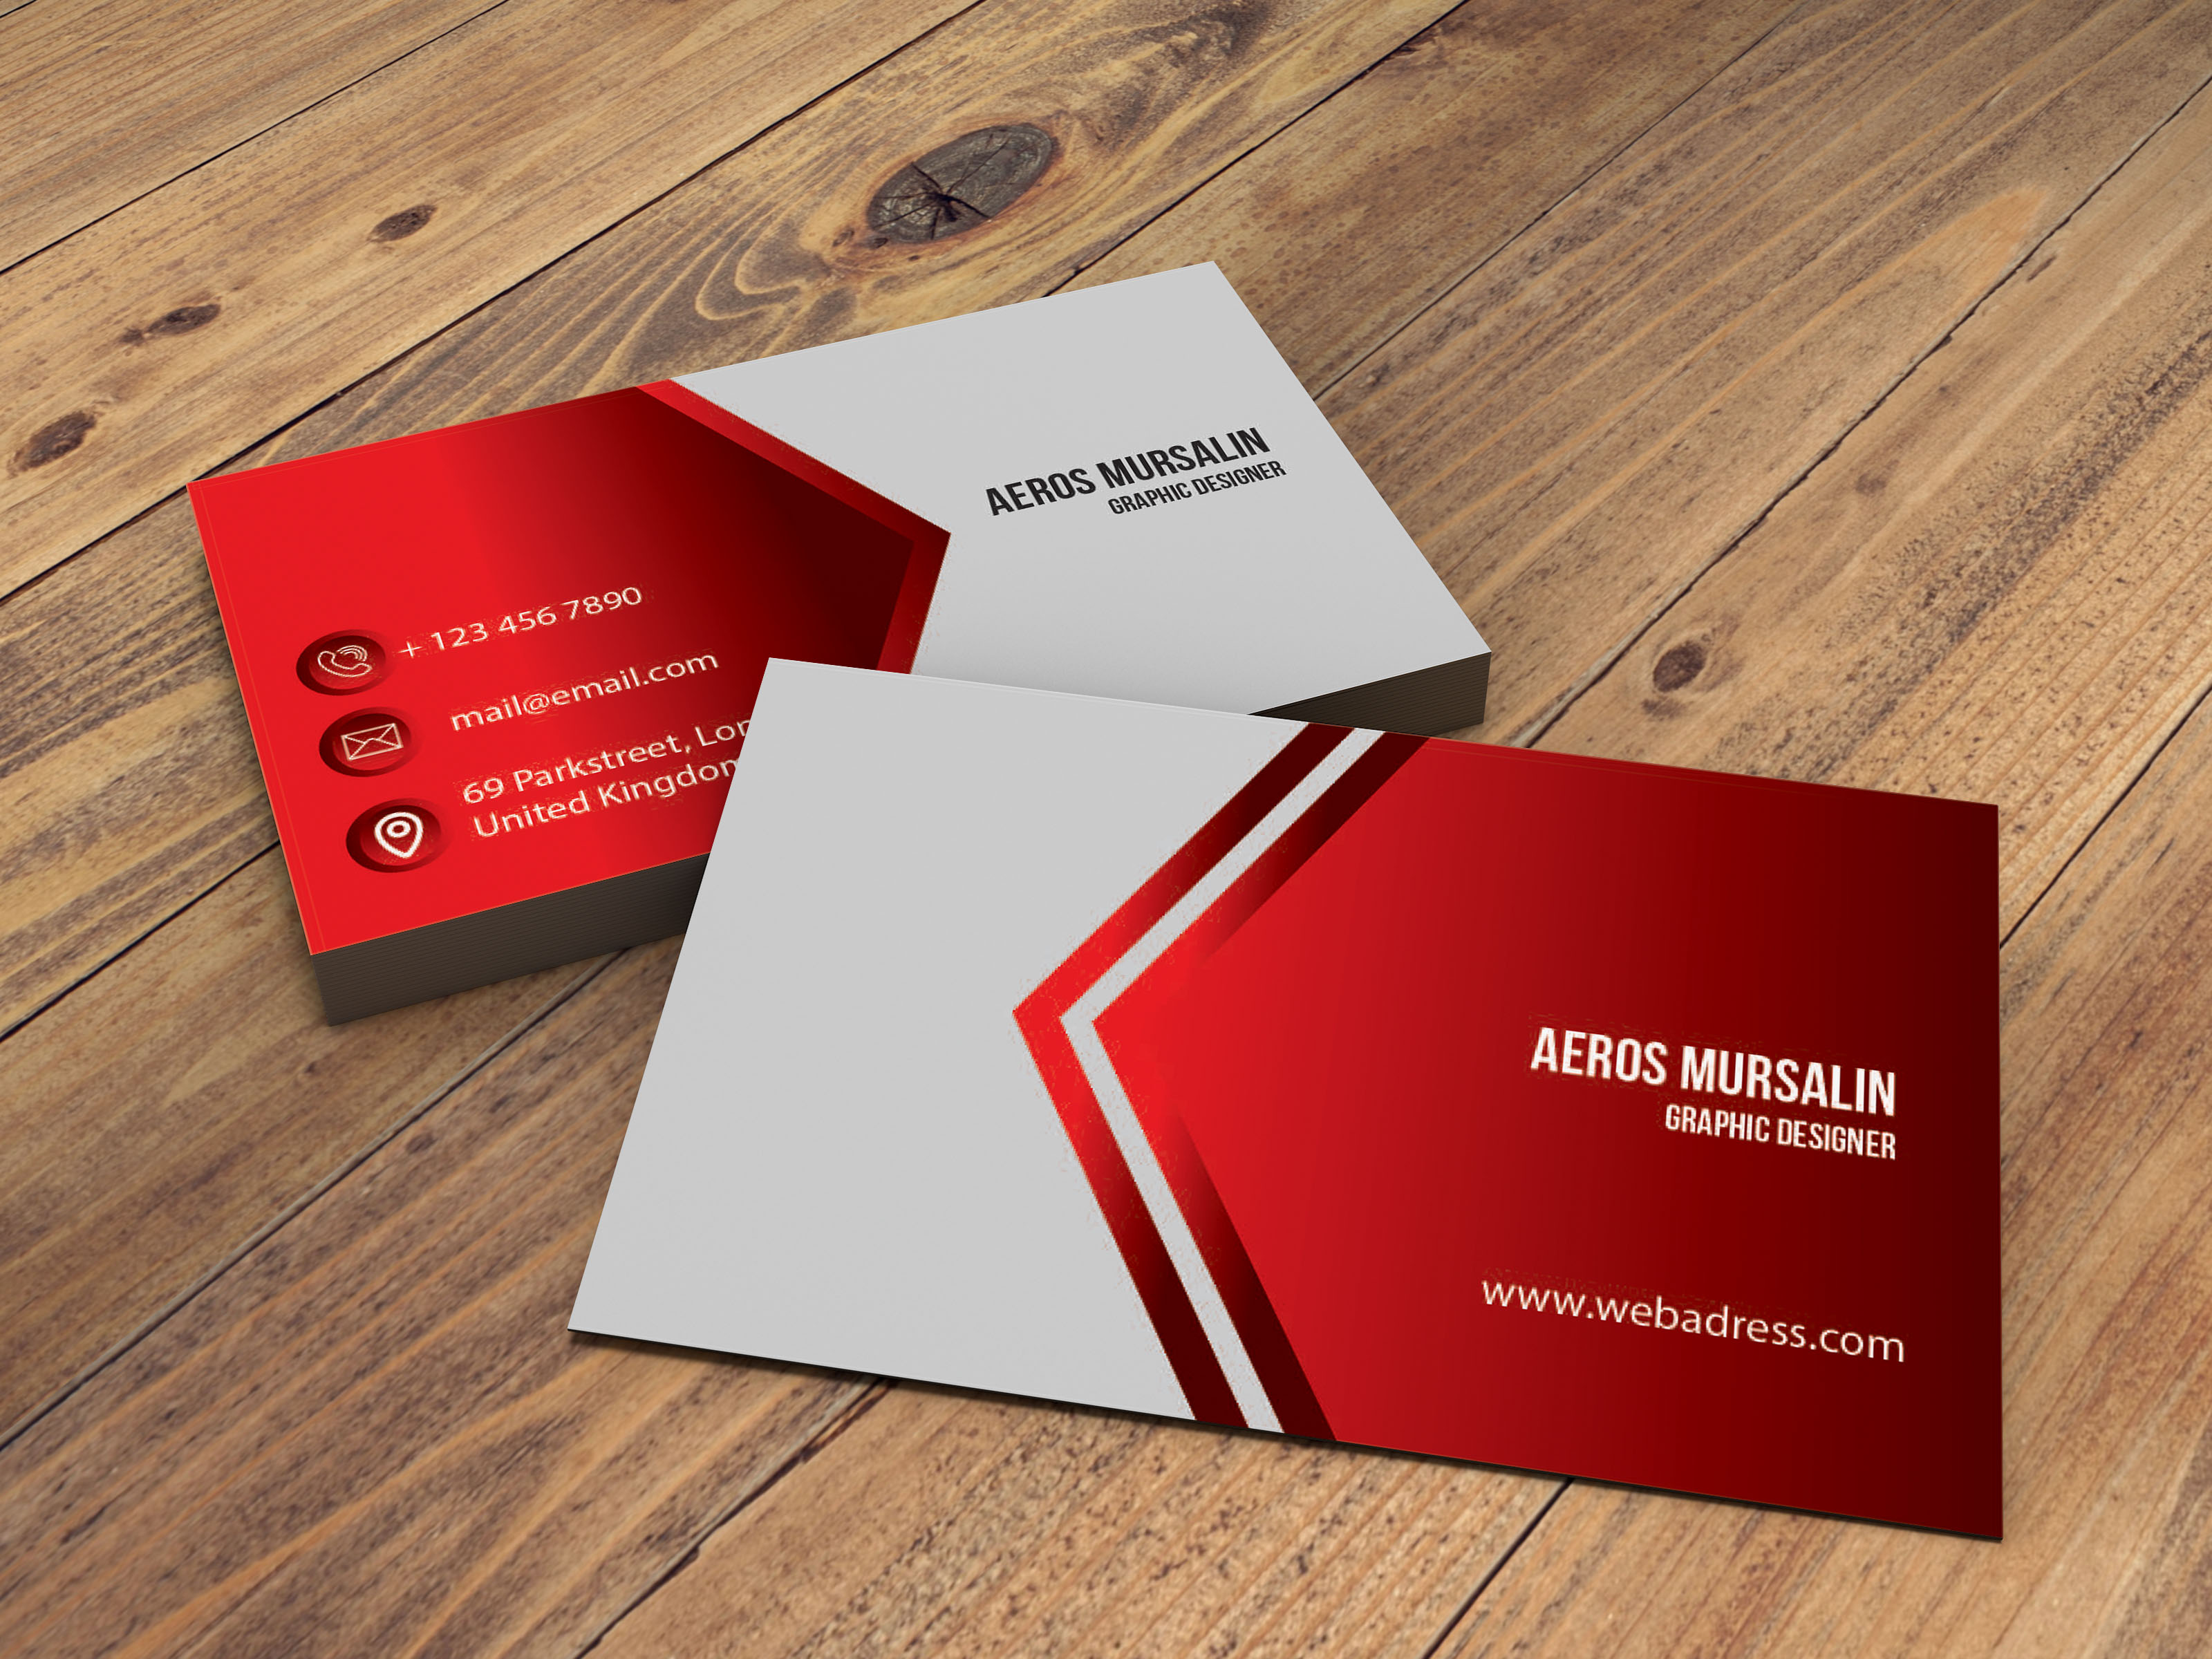 I will design professional and unique business card within 24 hours